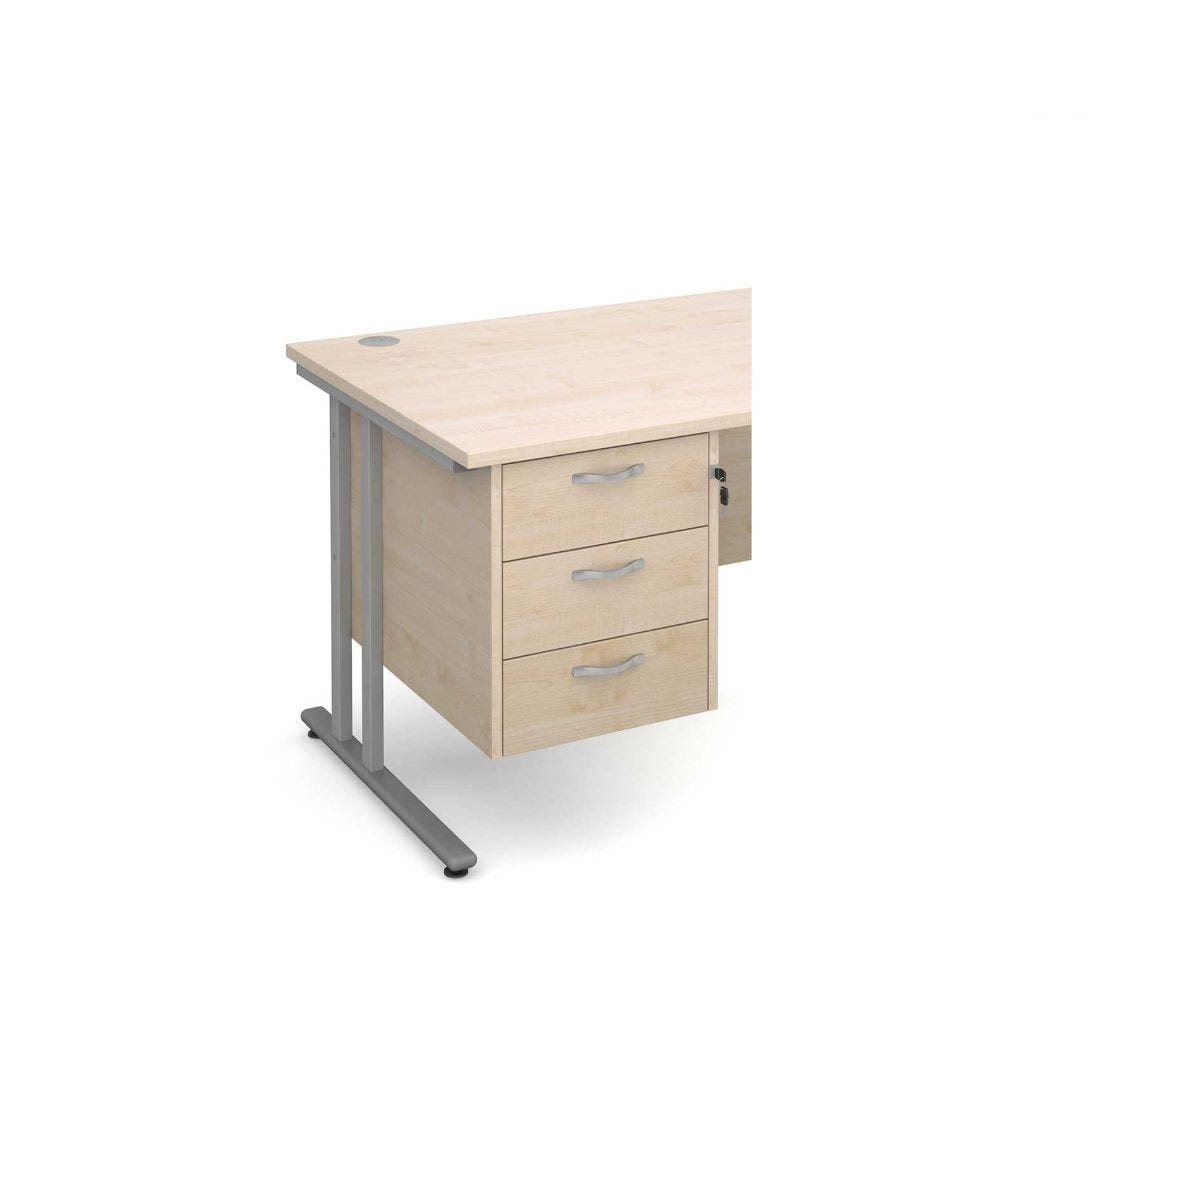 designs organising box craft index documents stationery or grey storage drawers desk stylish unit distinct home durable materials products tabs drawer varicolor organiser office study perfect tower with for art